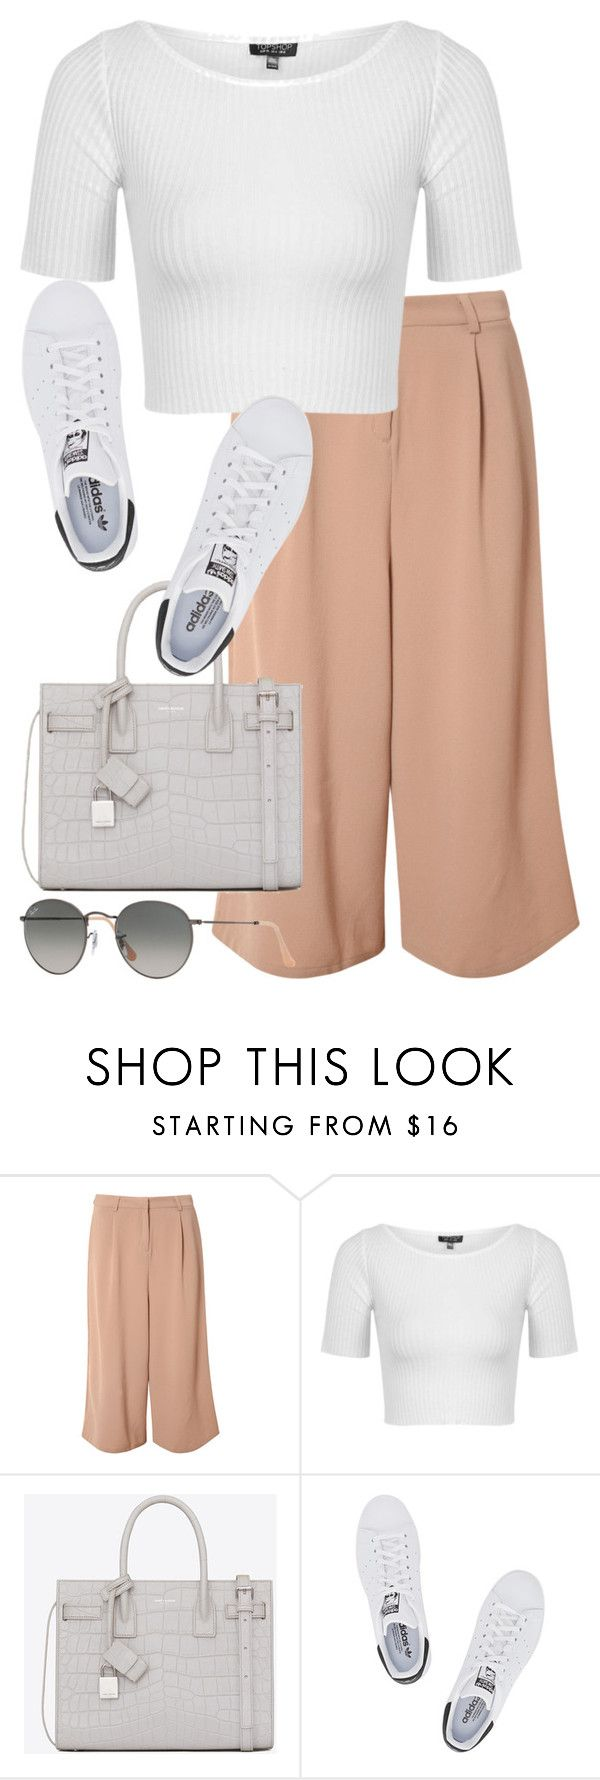 """Untitled #2769"" by elenaday on Polyvore featuring Glamorous, Topshop, Yves Saint Laurent, adidas Originals and Ray-Ban"